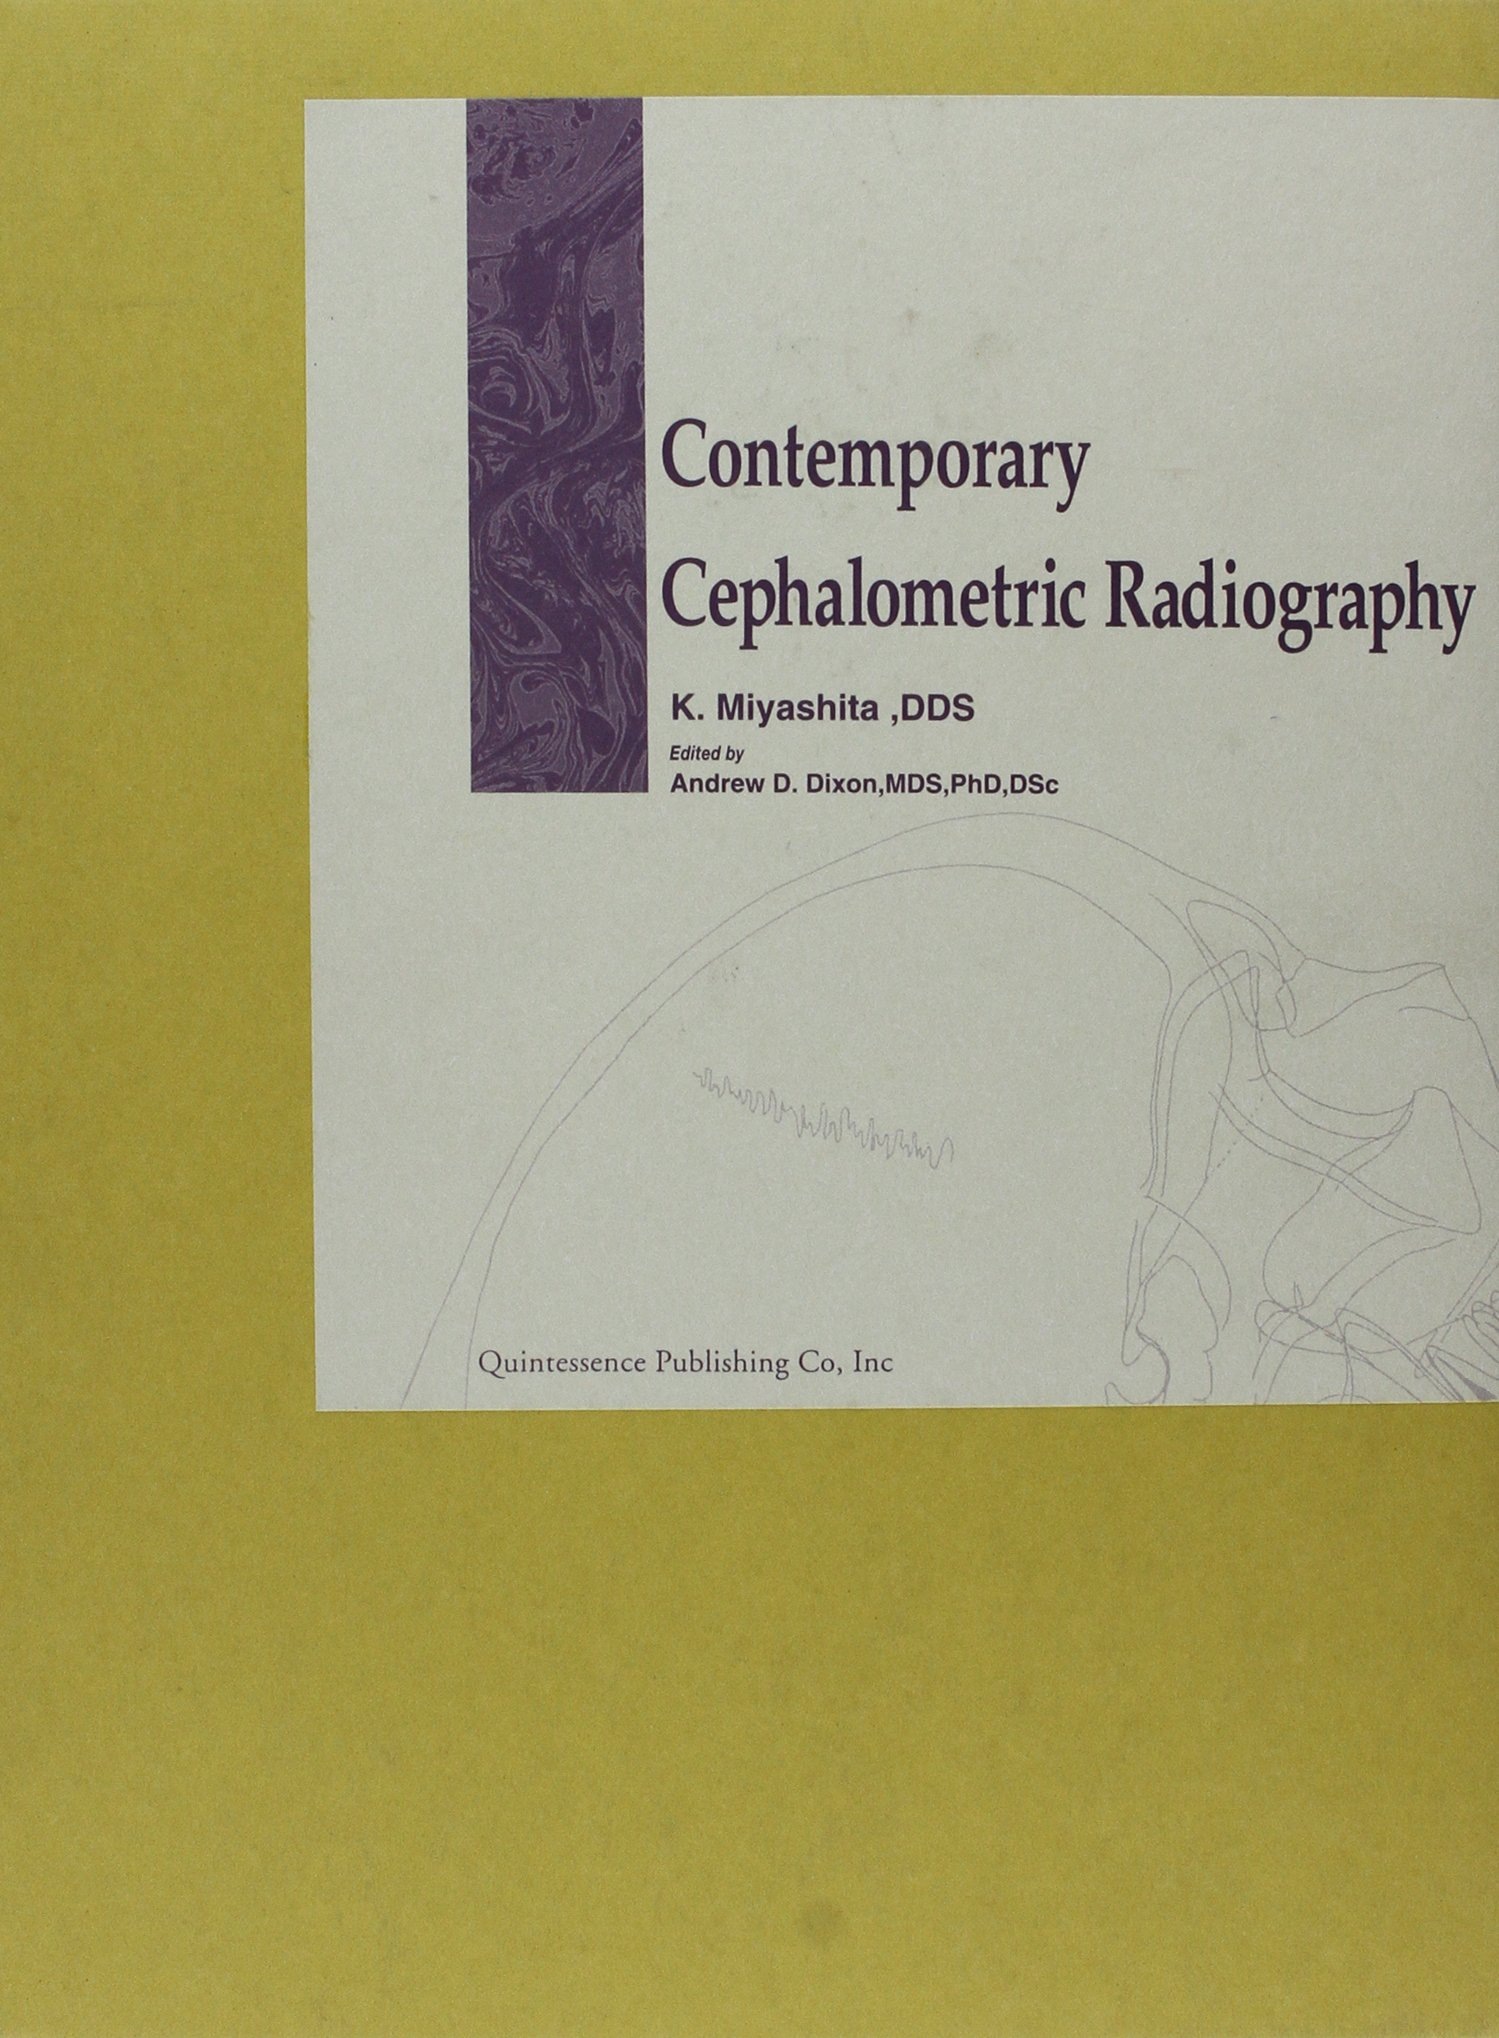 Contemporary Cephalometric Radiography